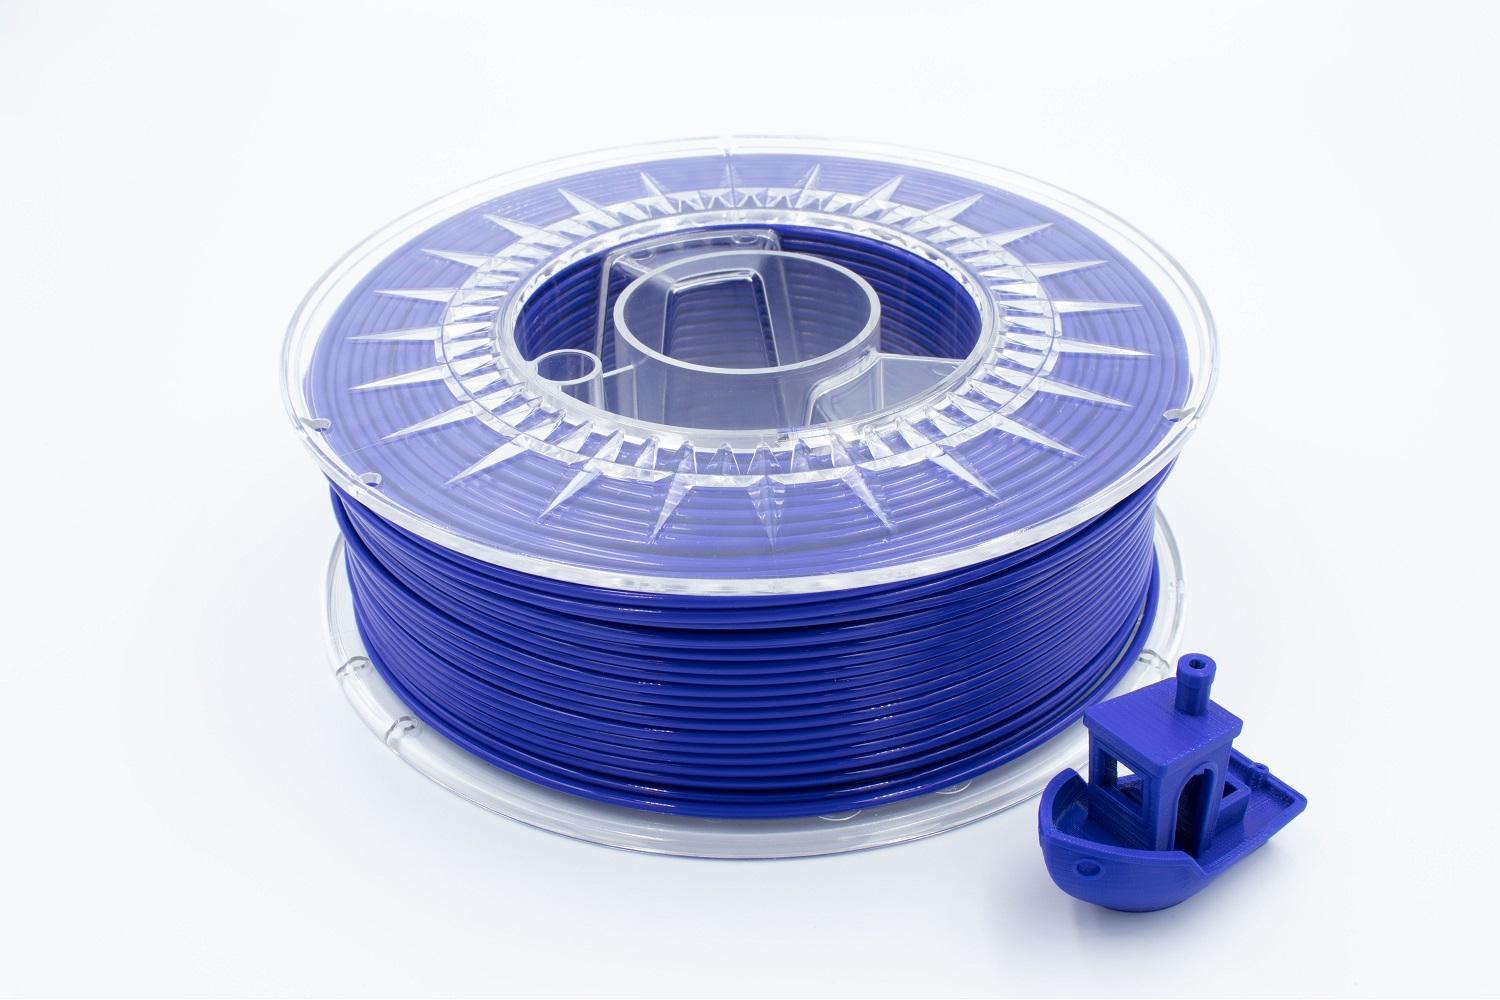 More info on Blue Jeans Filament